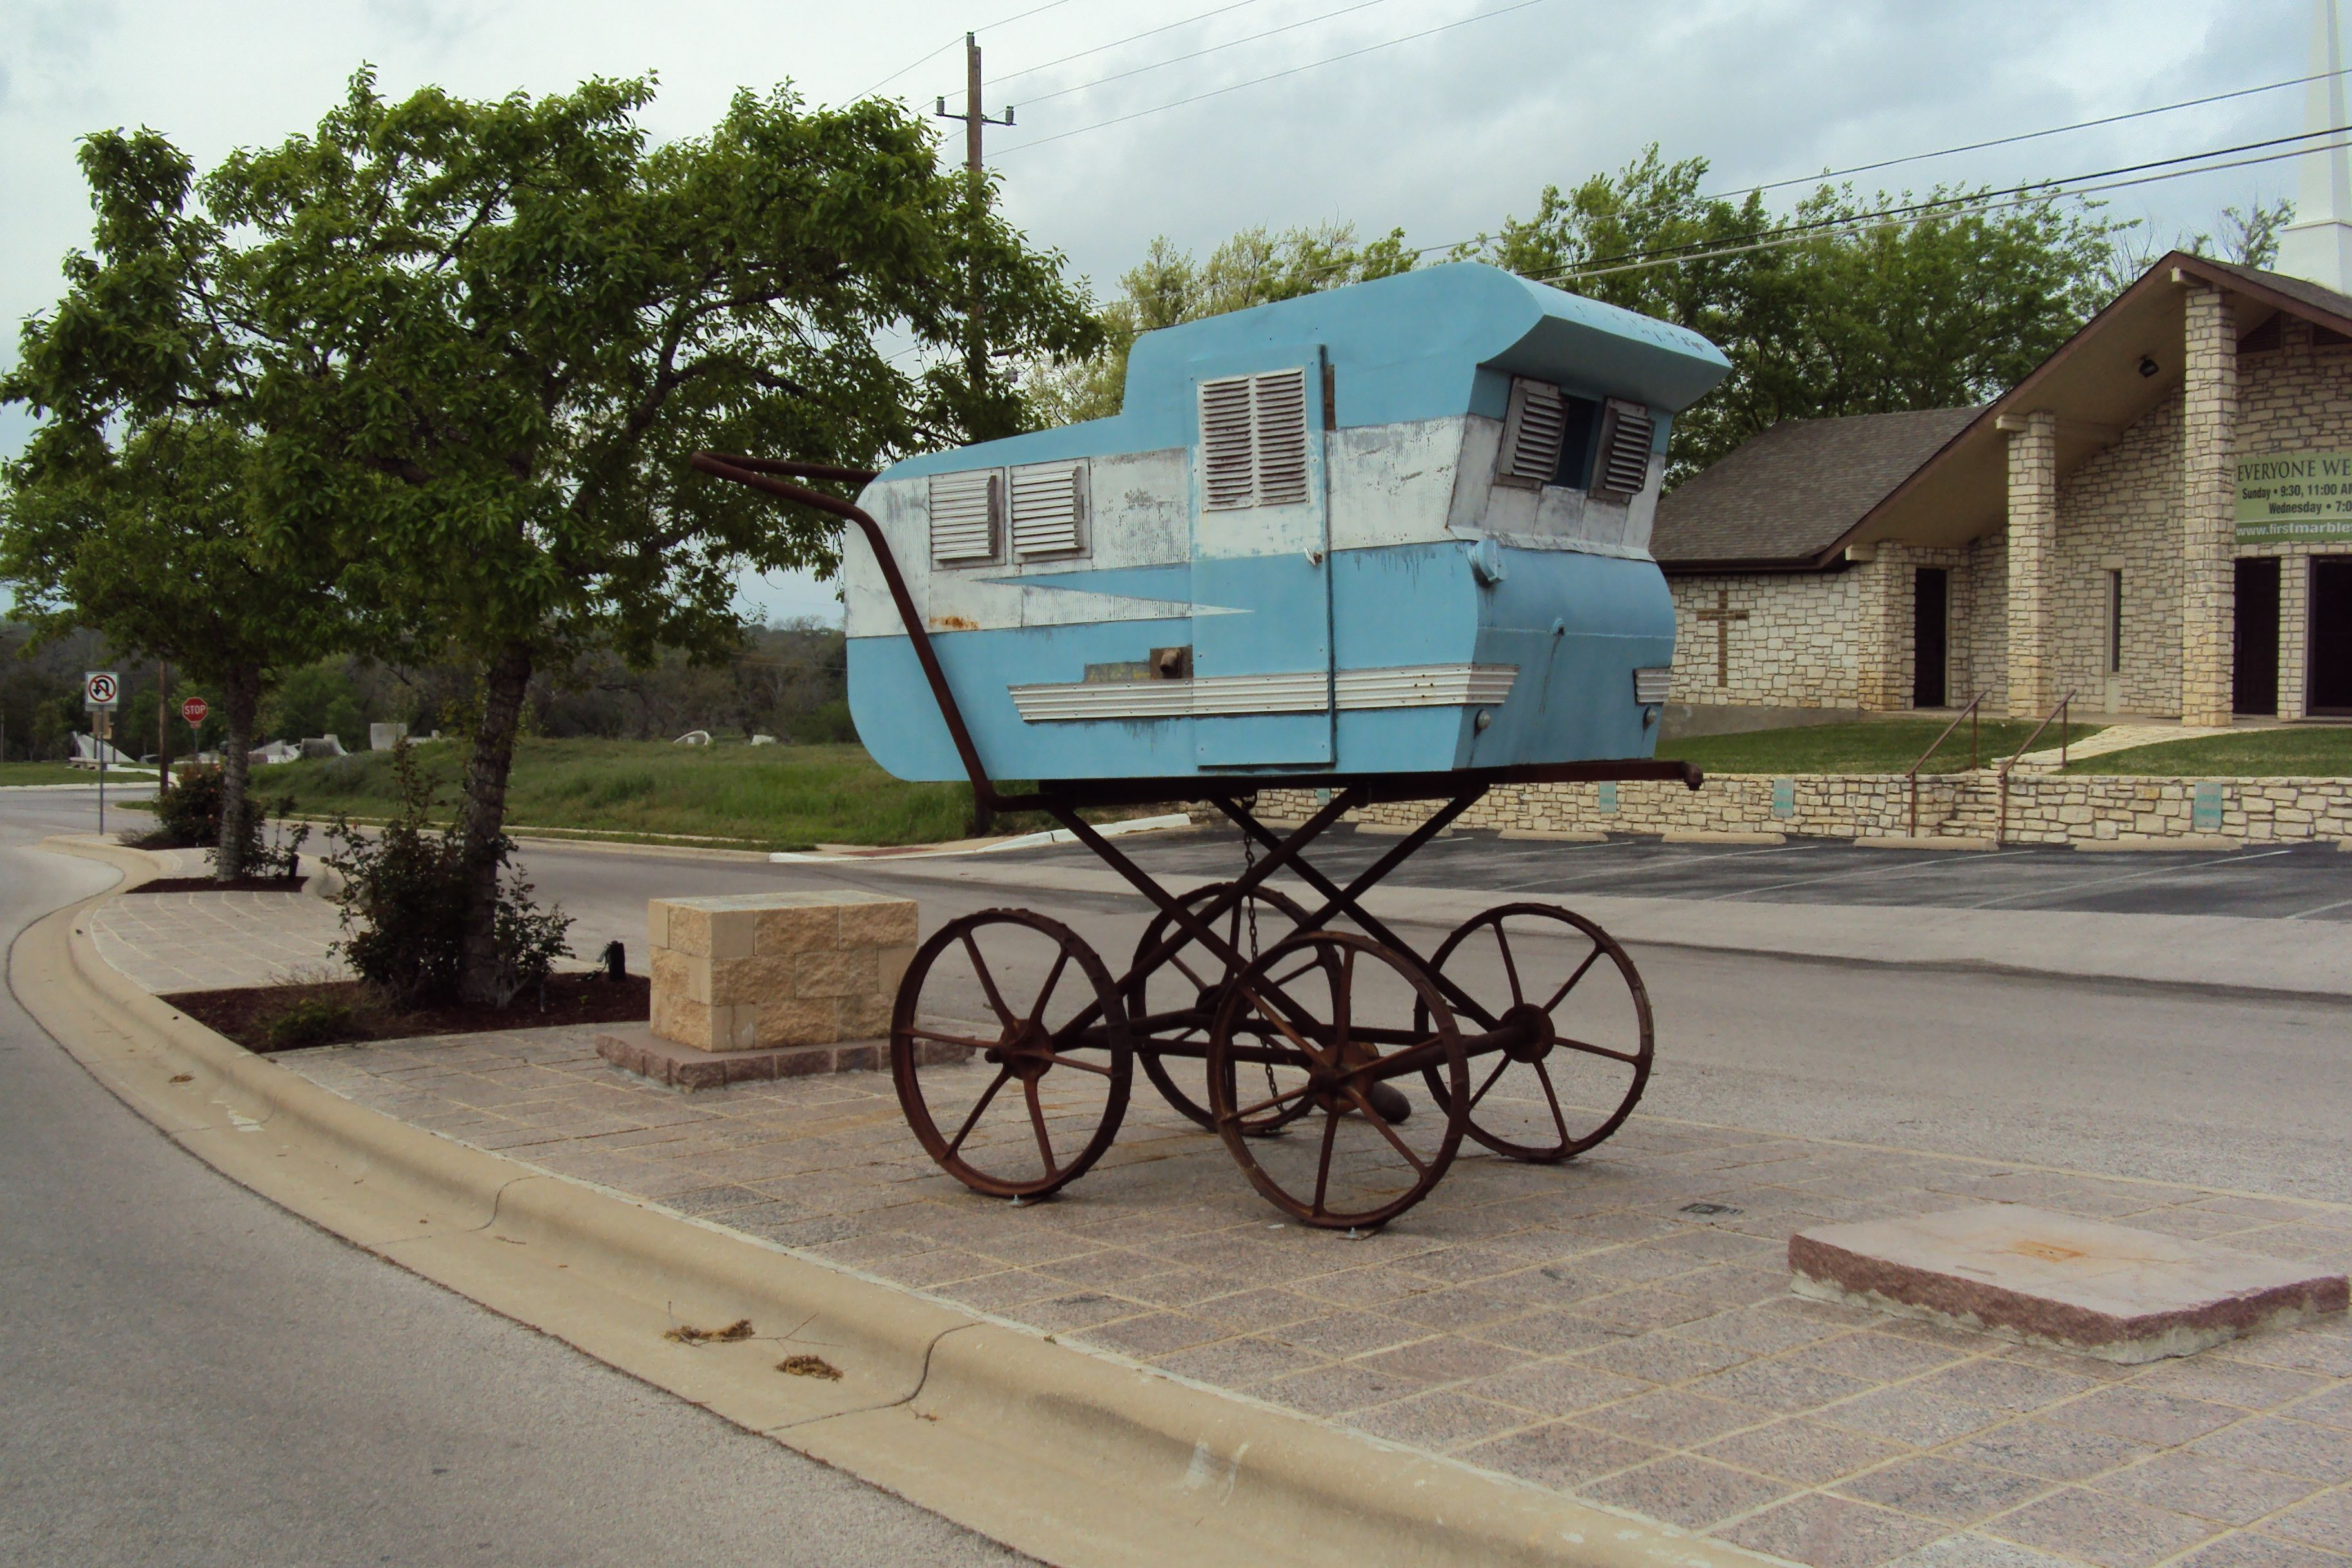 Only In Texas Marble Falls A Quant Lovely Town With Images Marble Falls Only In Texas Vintage Travel Trailers